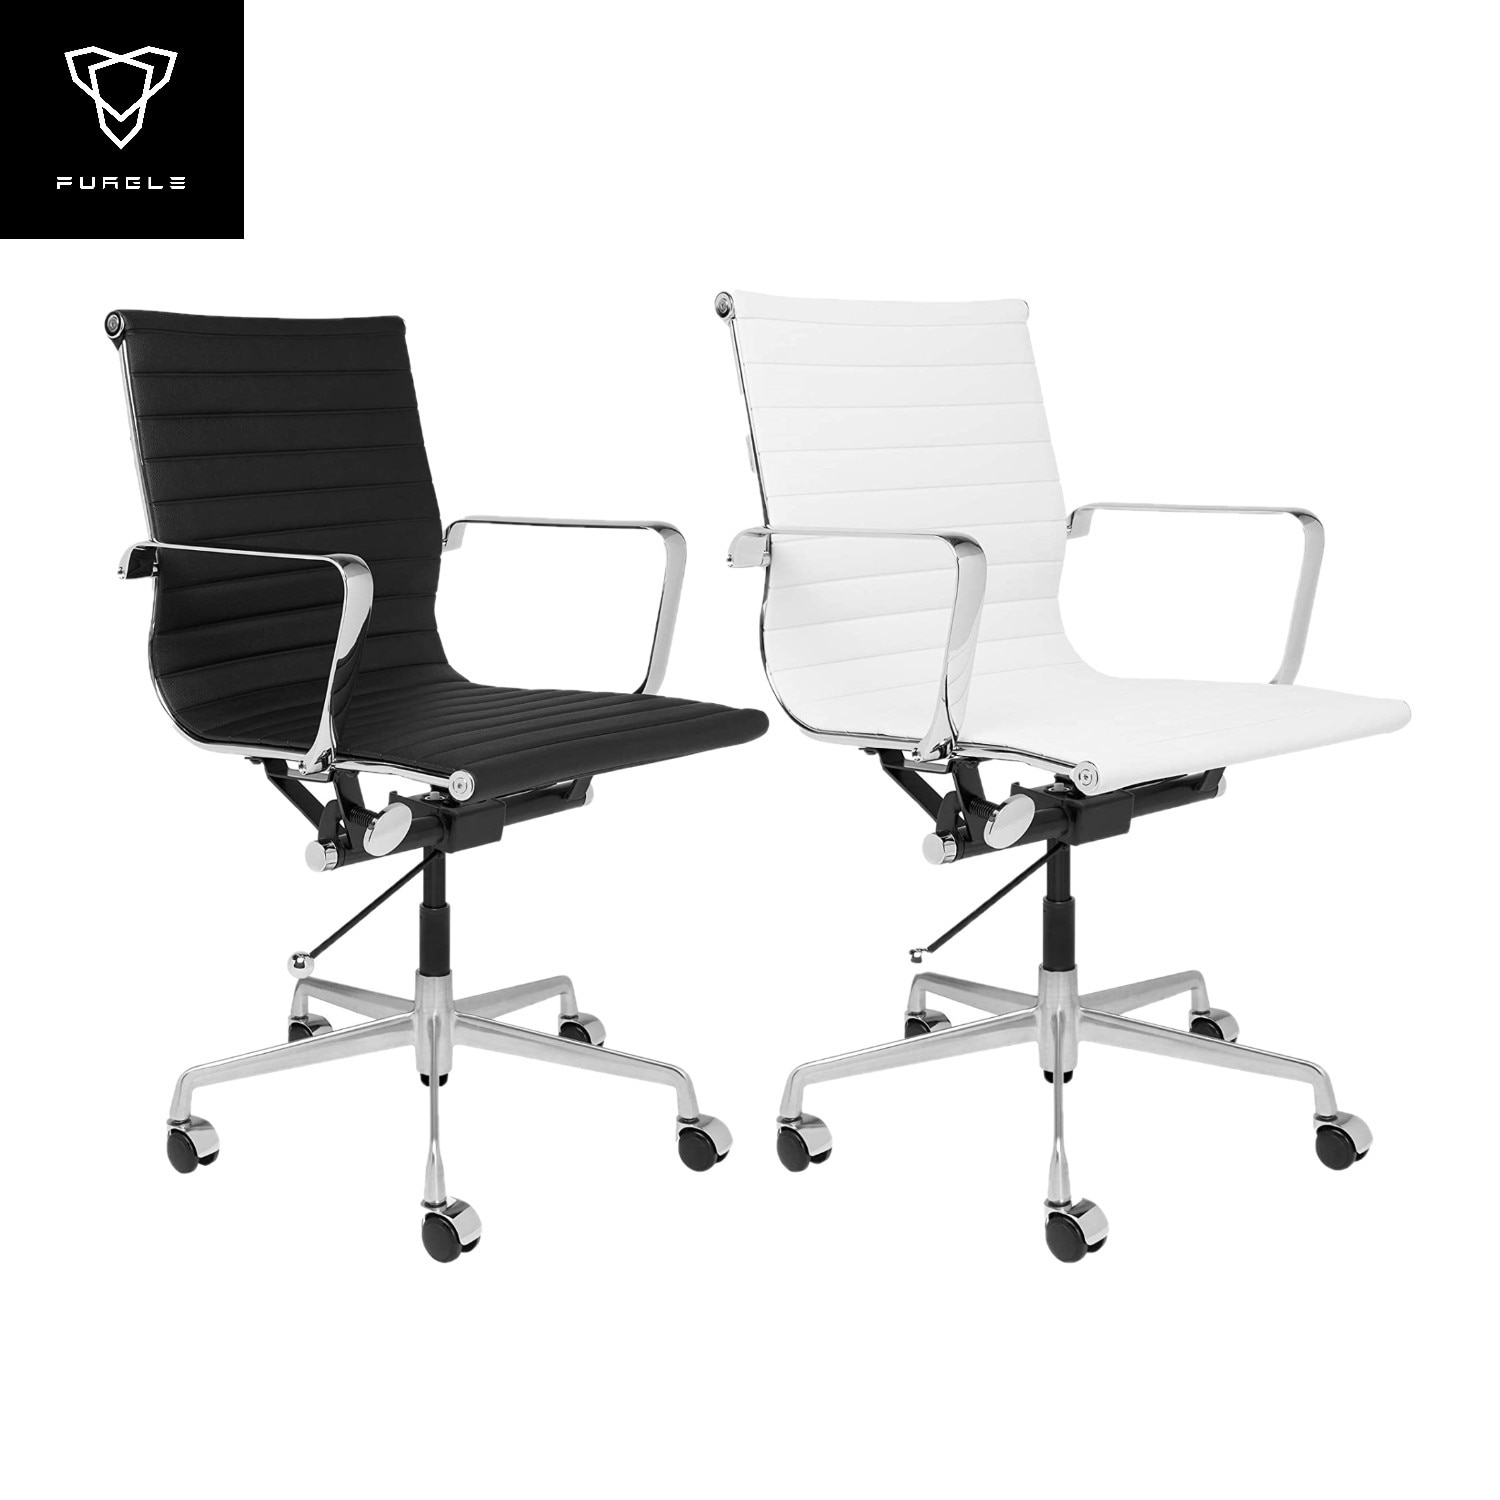 Hb4f6049d768243c4b8544deebaedef19P - Furgle Executive Office Chair Mid Back PU Leather with Arms Rest Tilt Gaming Chair Adjustable Height with Wheels Swivel Chairs